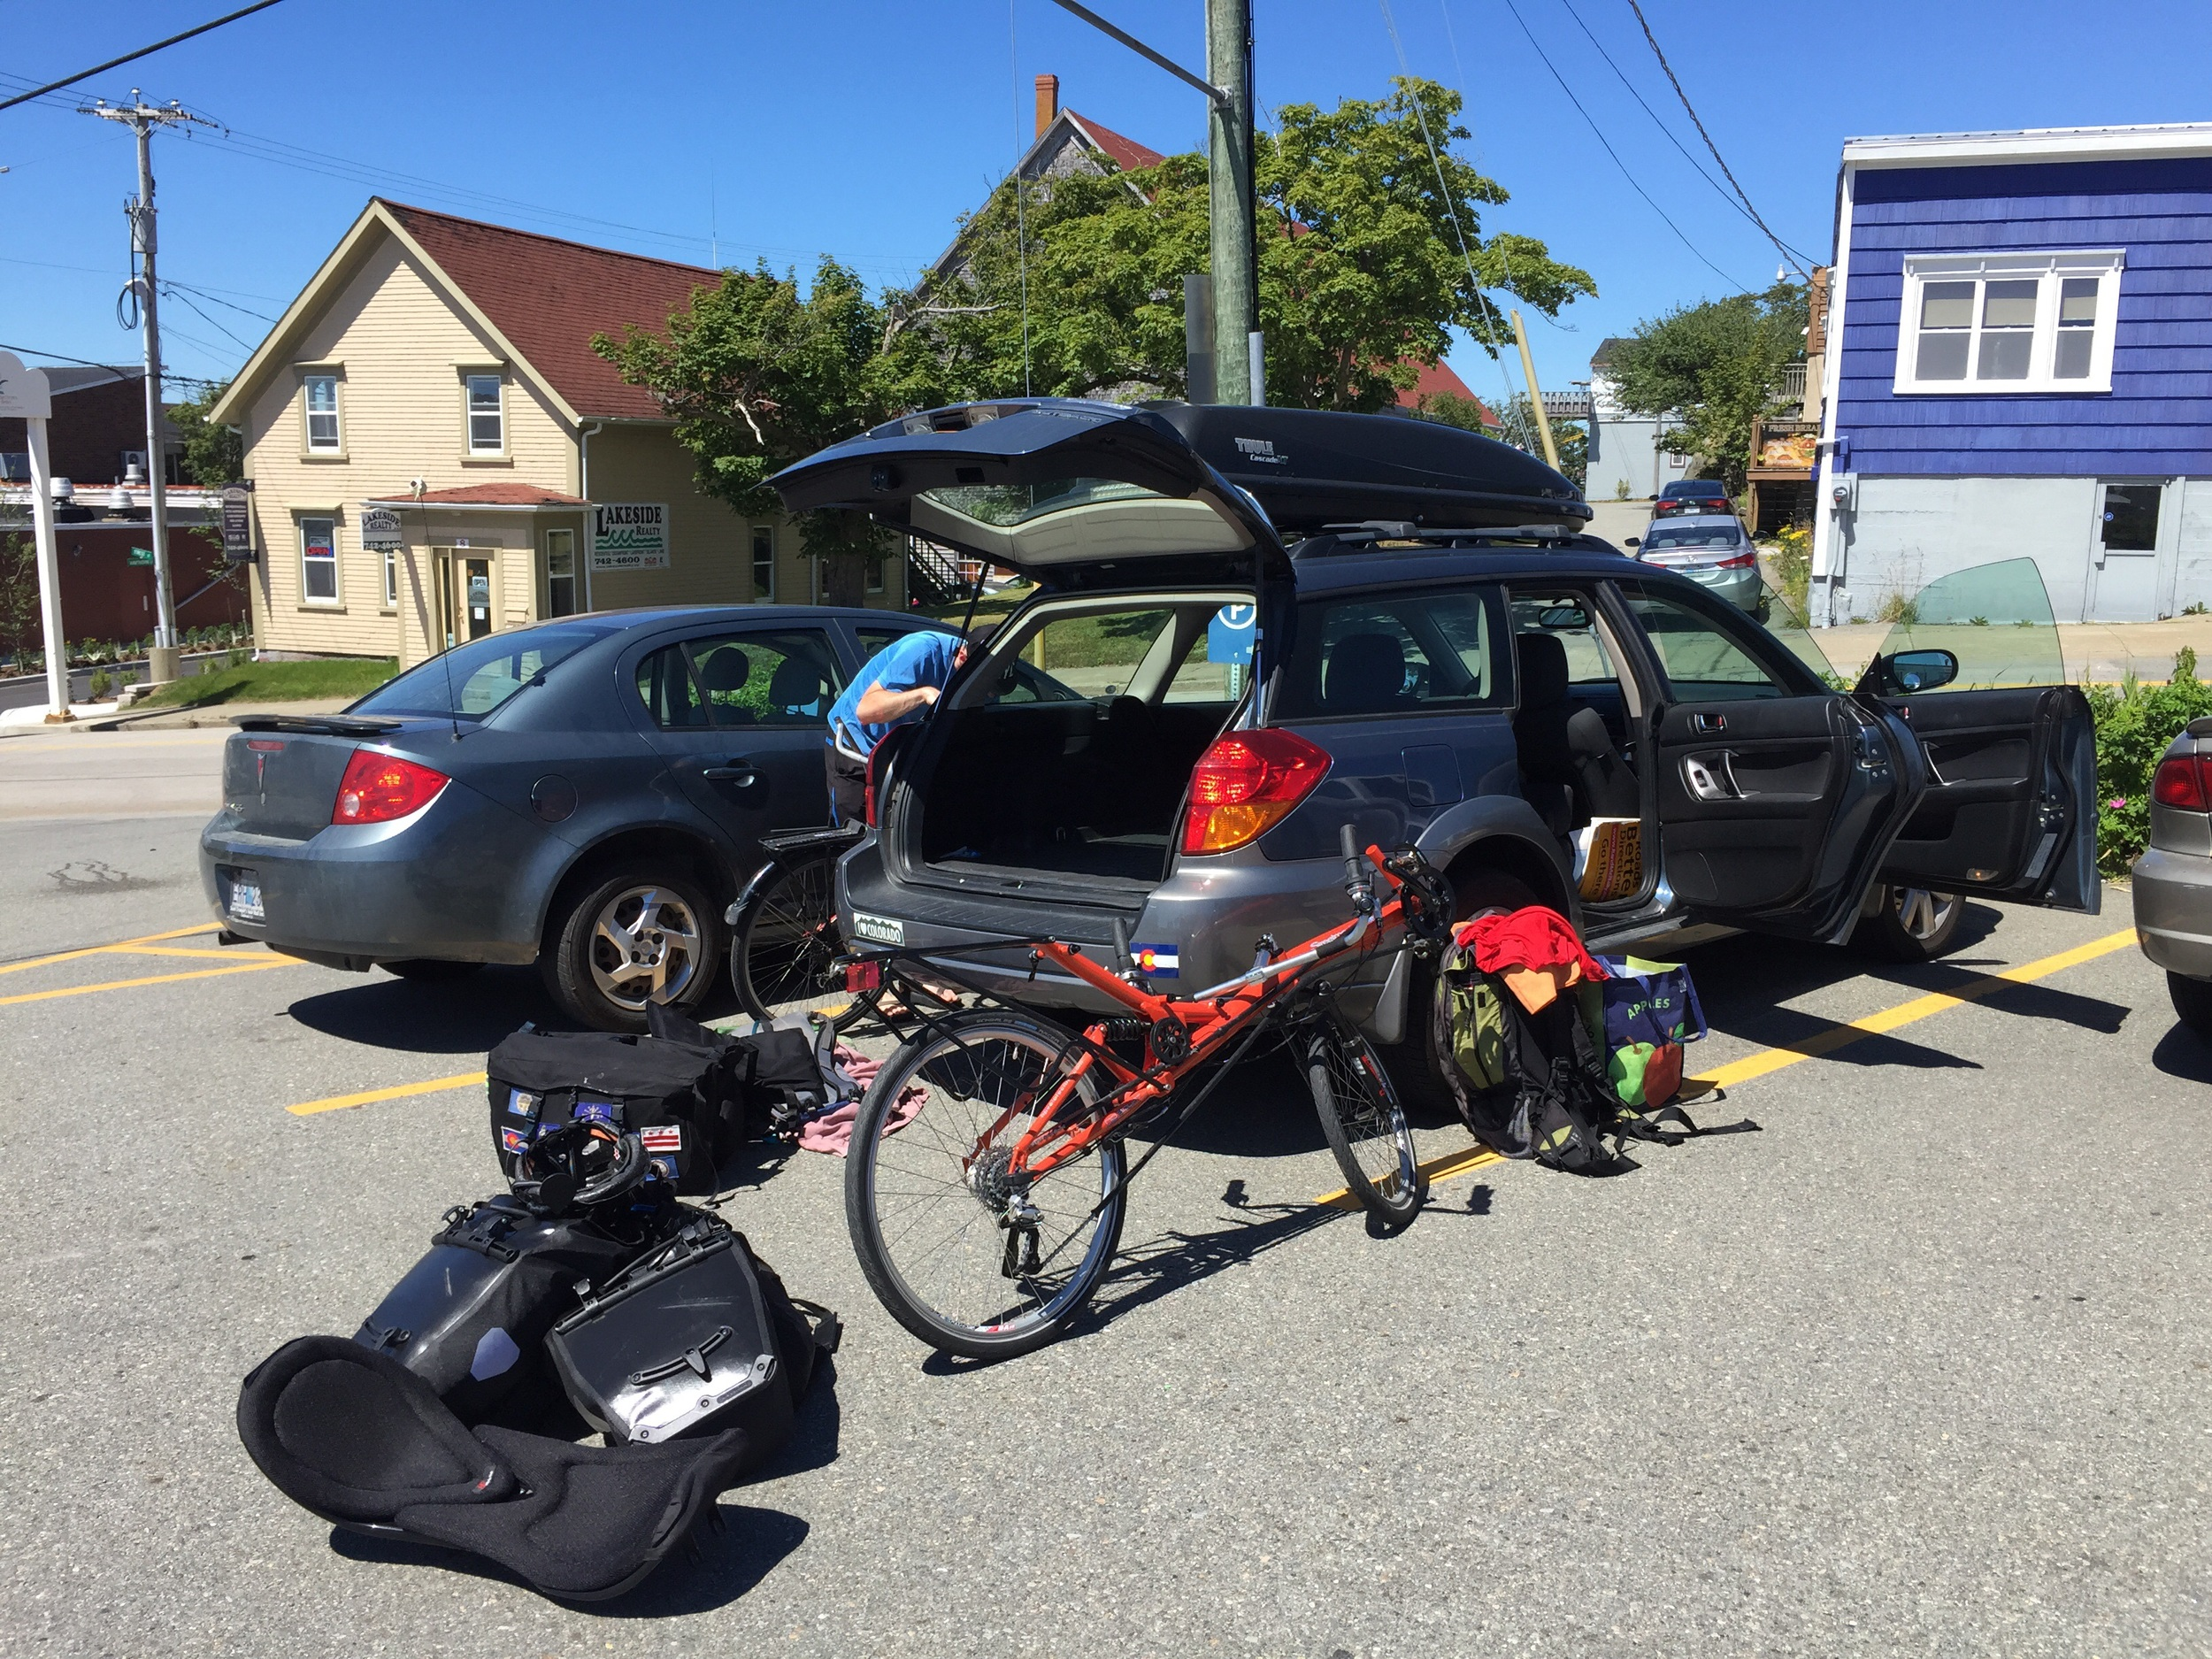 Loading up the bikes in Yarmouth.